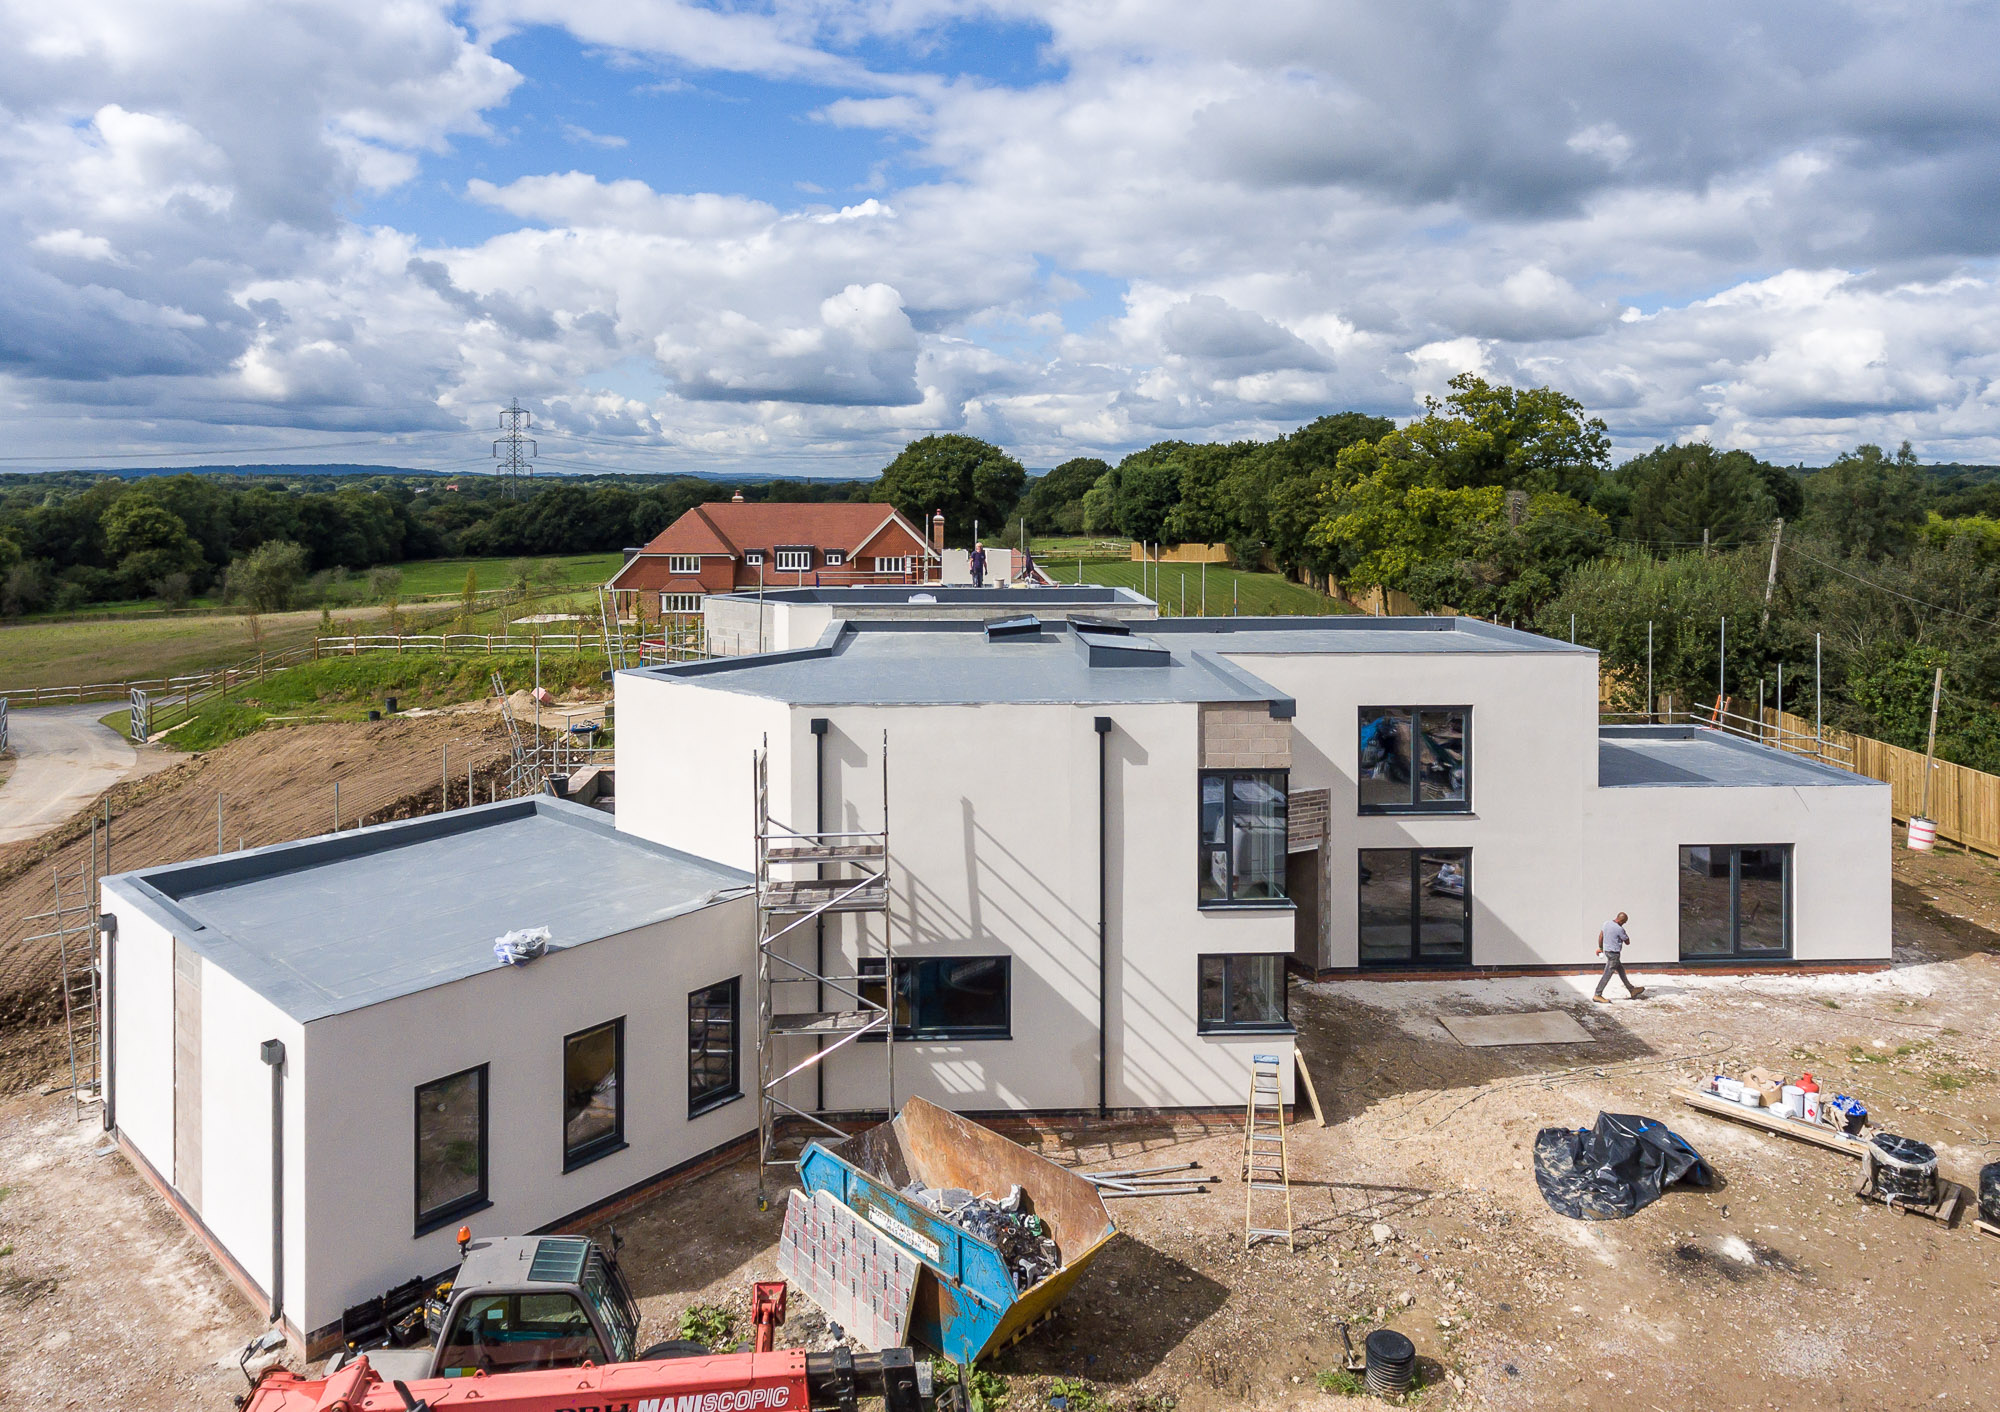 jonathan bond aerial photographer, view of building site using drone